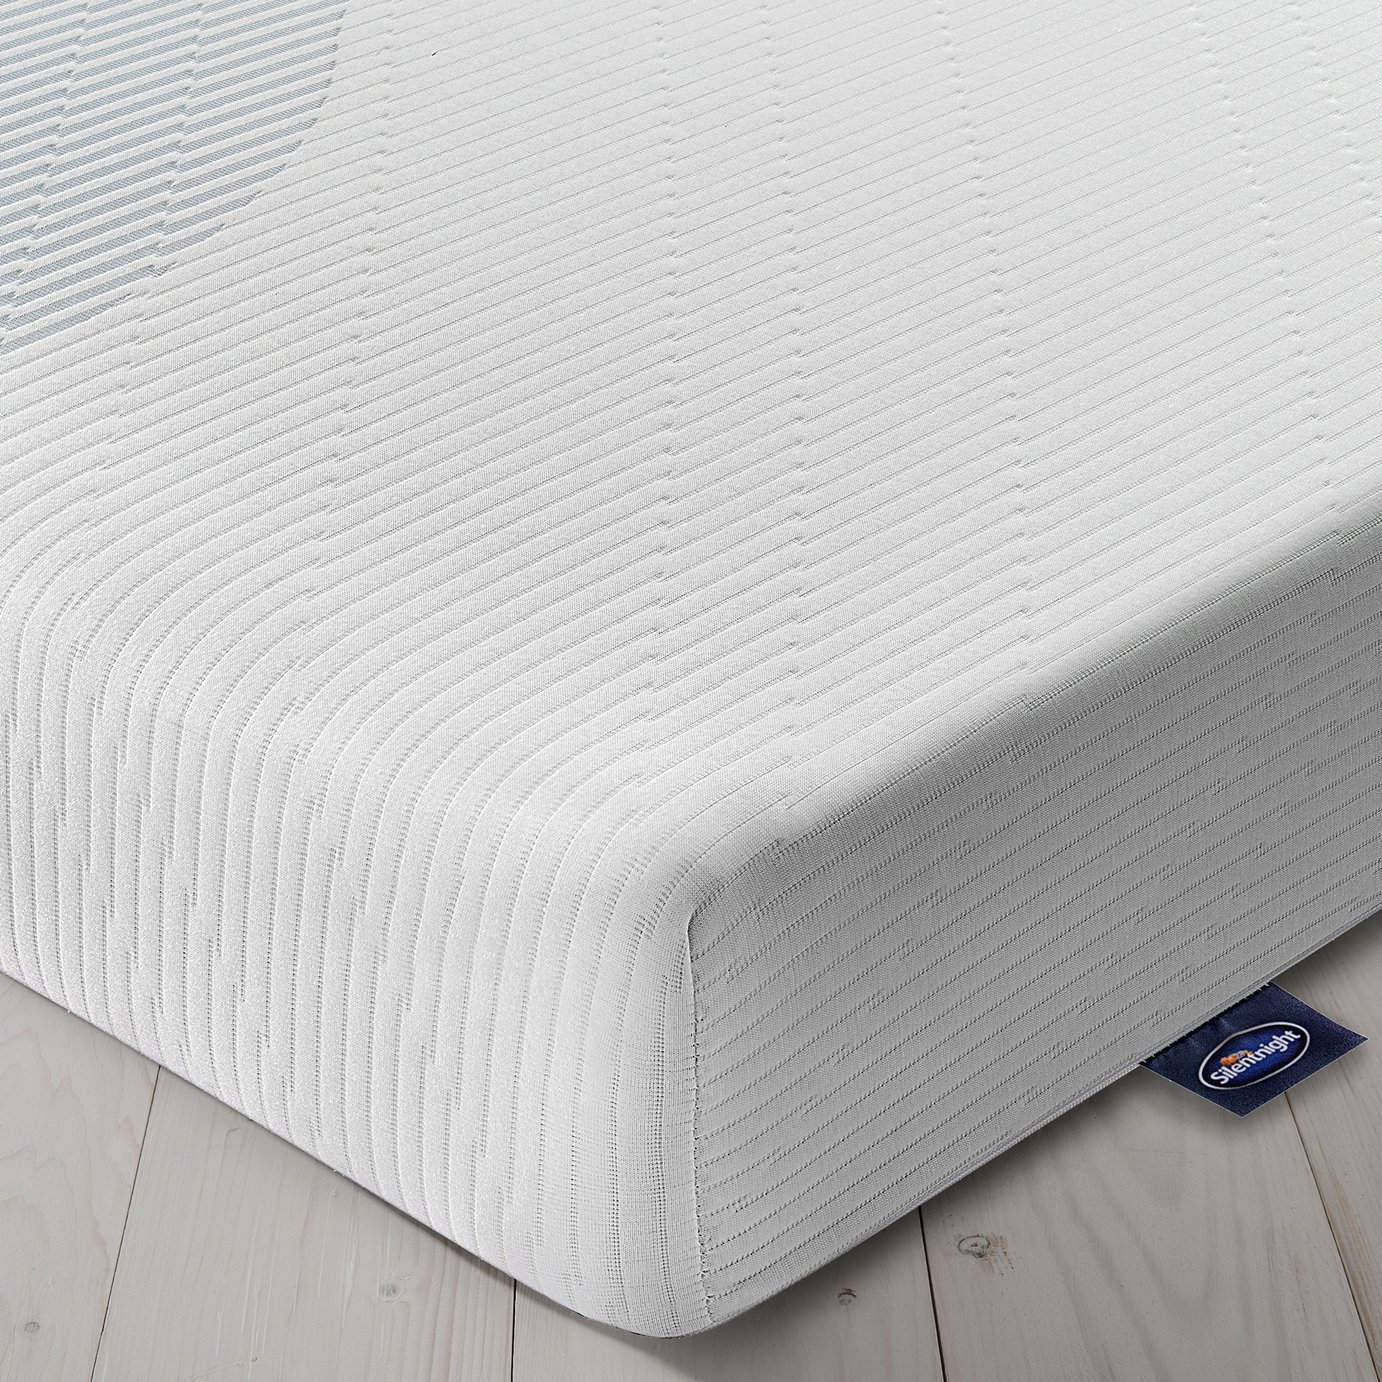 Silentnight Memory Foam Rolled Kingsize Mattress